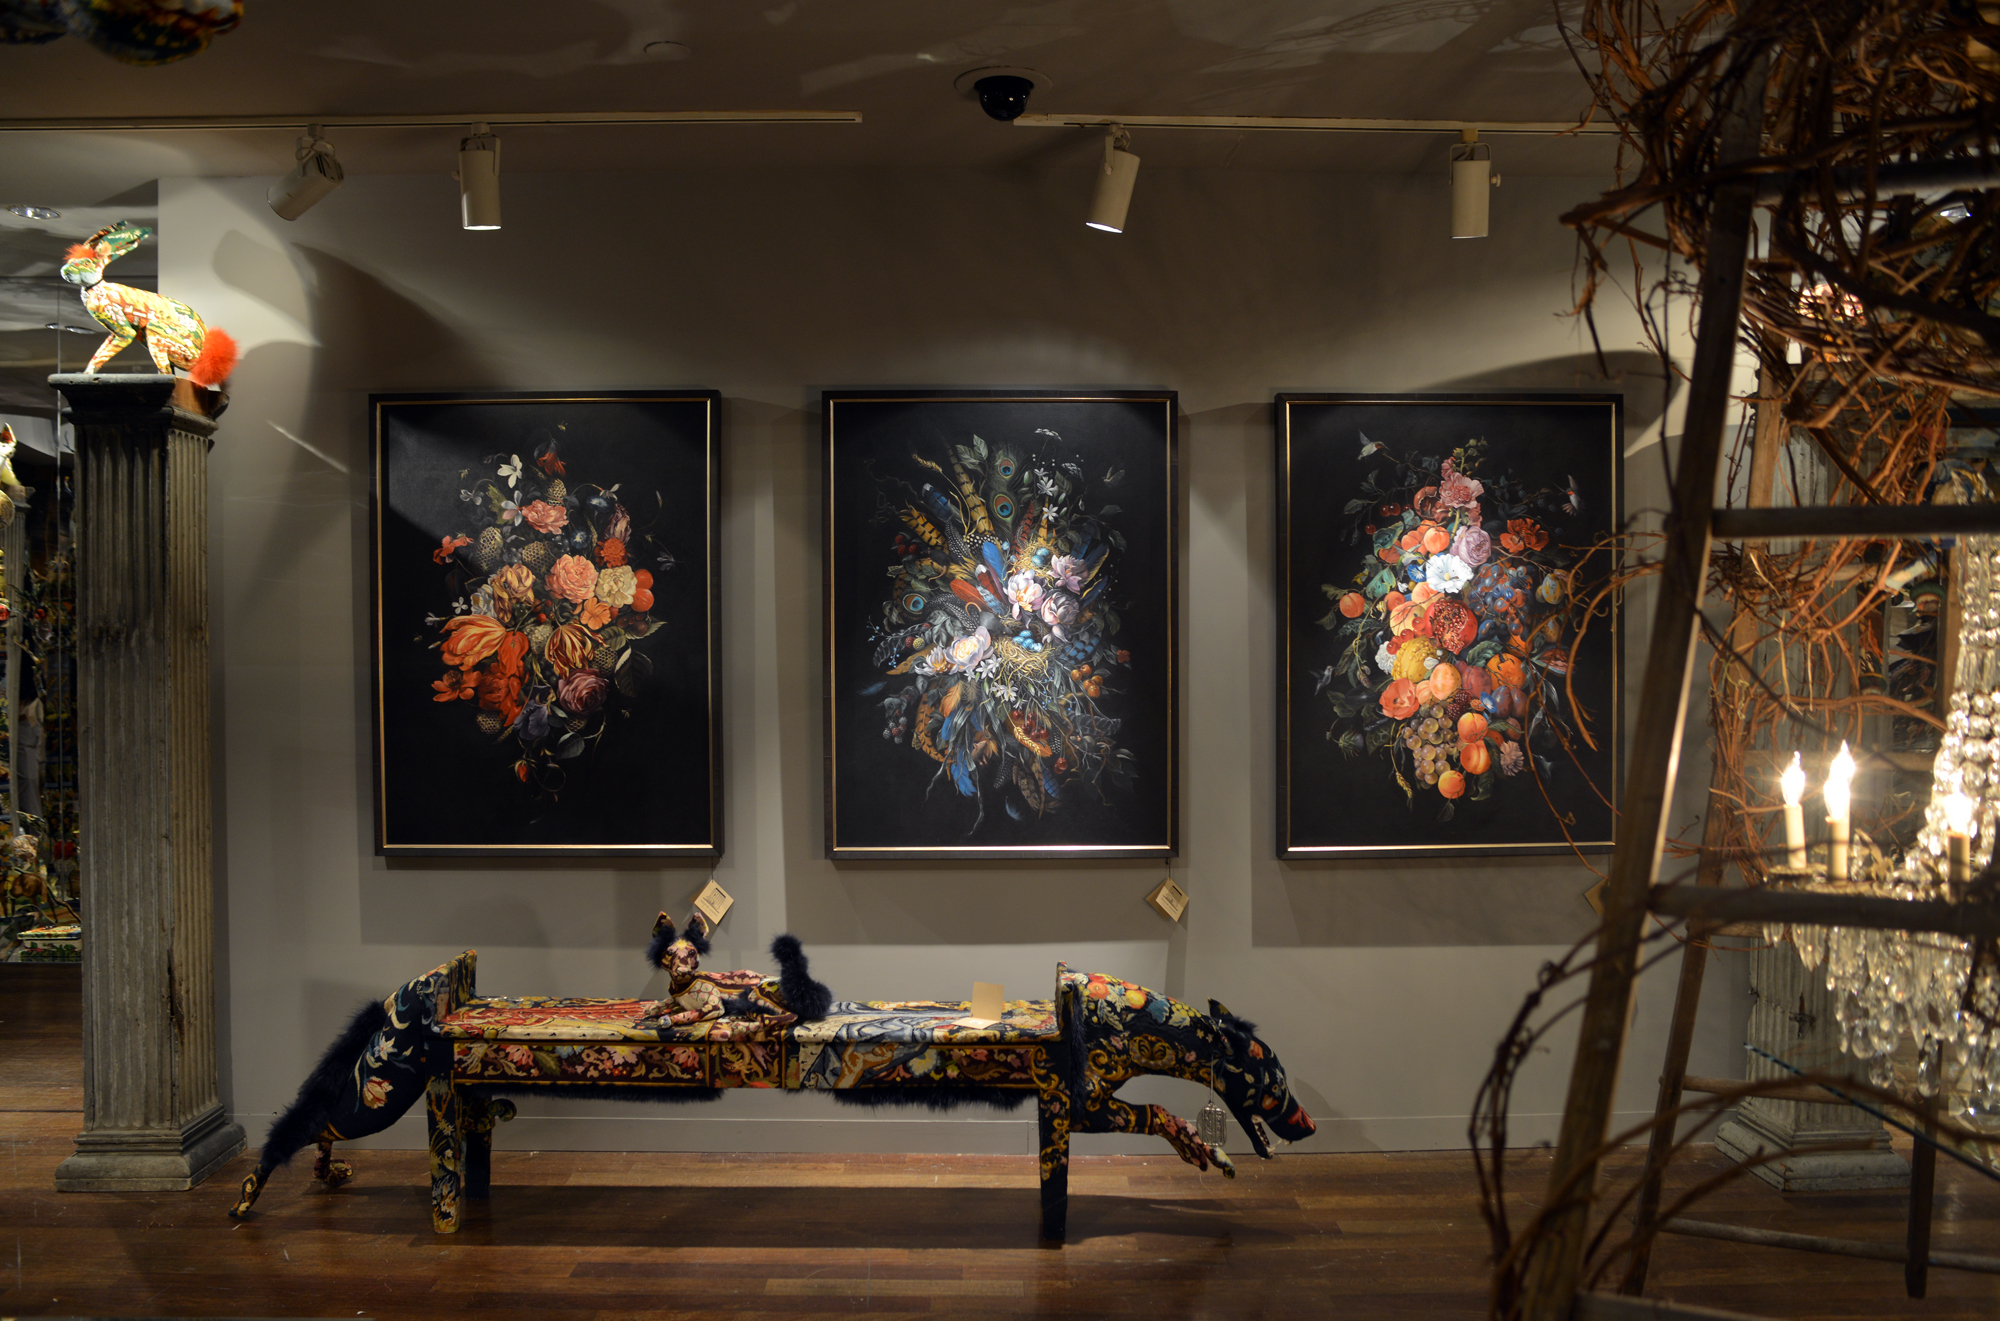 Bergdorf Goodman Loft | Paintings by Jake Messing | Sculptures by: Frédérique Morrel | Photography by: Lauren L Caron © 2015